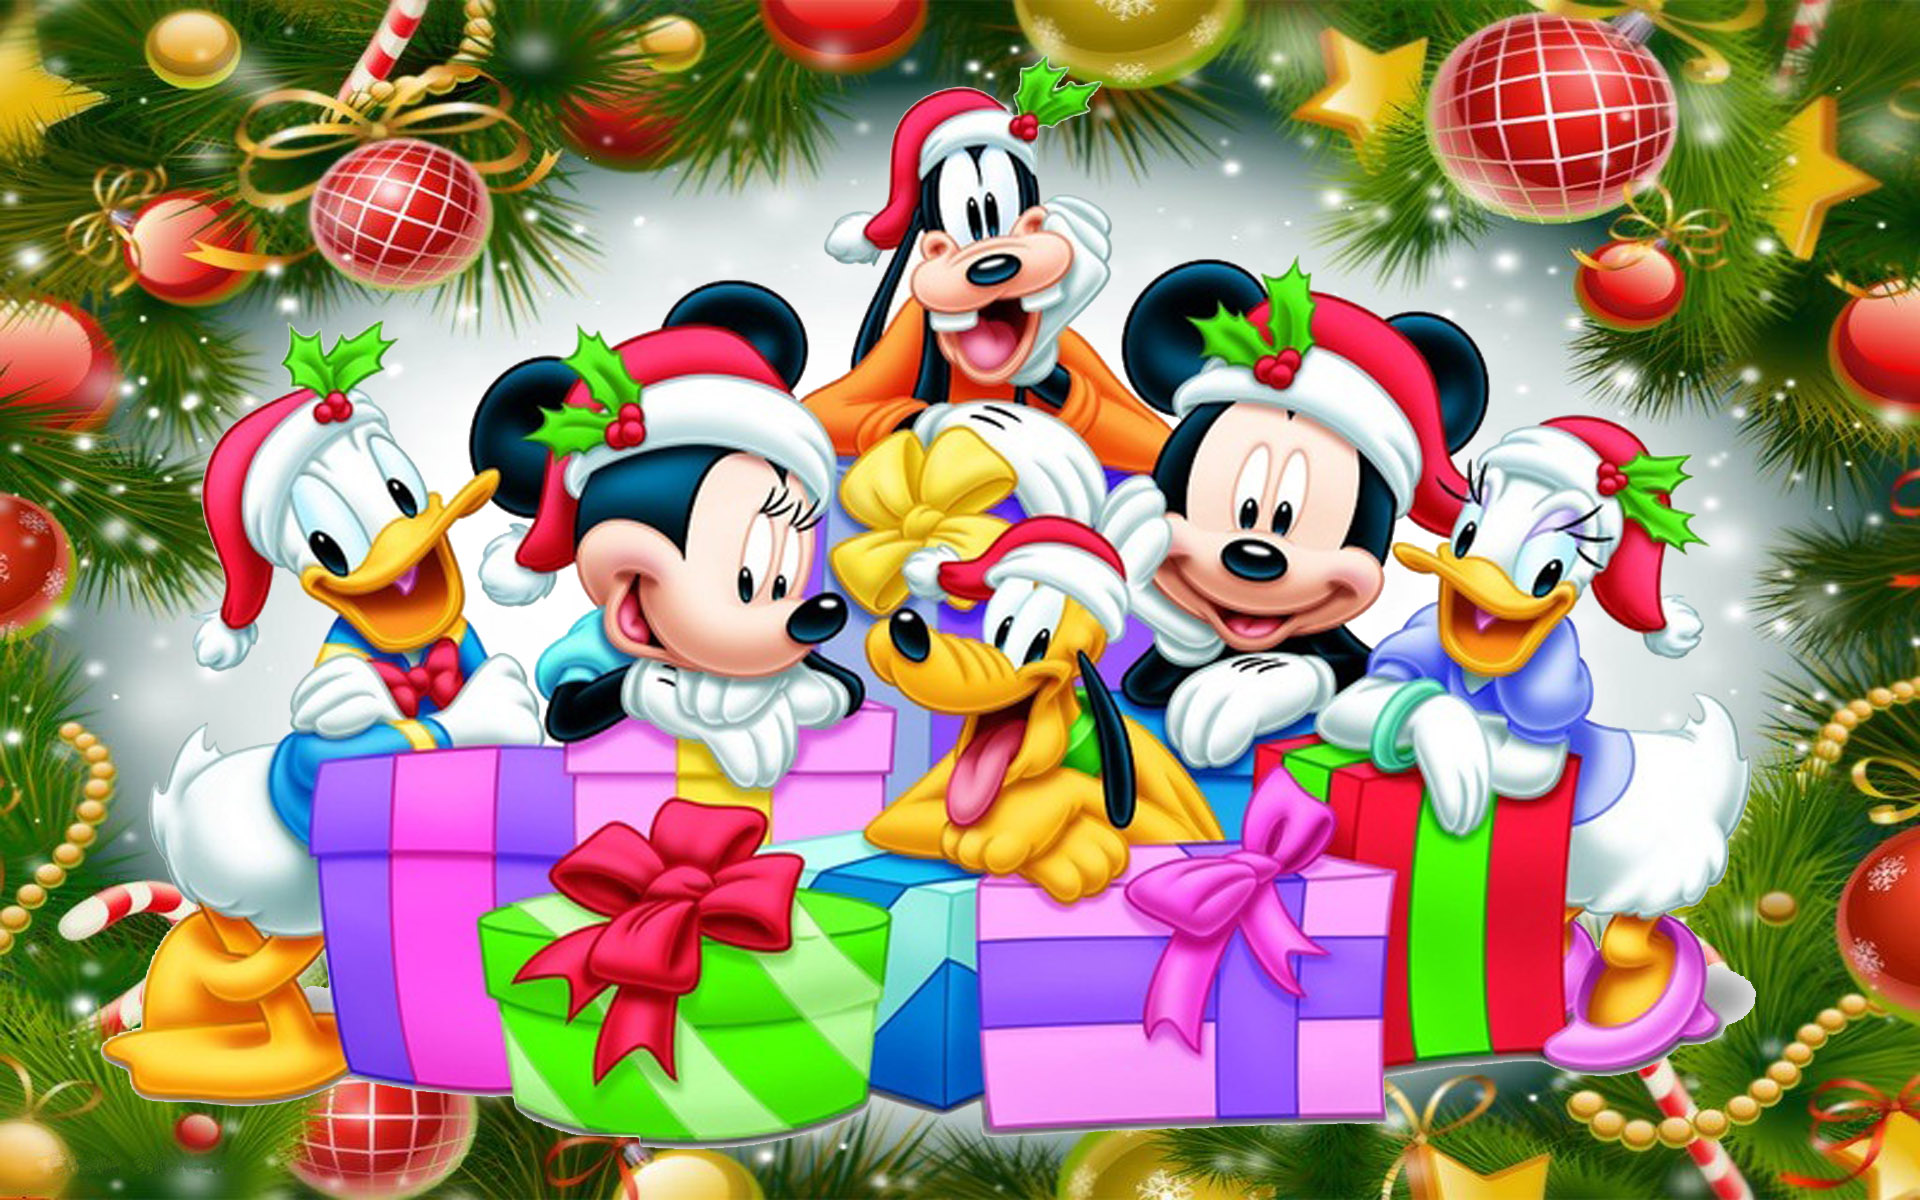 3d Live Wallpaper For Android Tablet Free Download Merry Christmas Than Mickey And Friends Desktop Hd